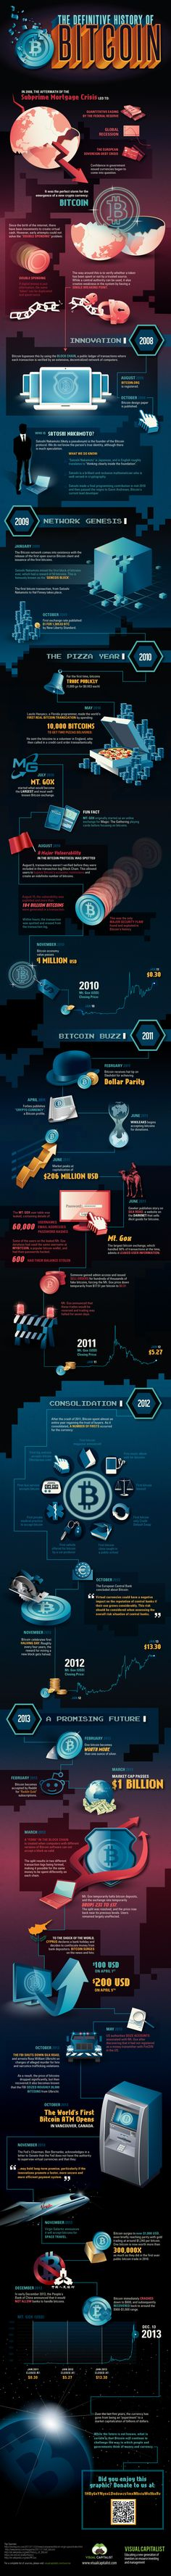 the definitive history of Bitcoin #infographic #technology #bitcoin http://www.paycoinpoker.com